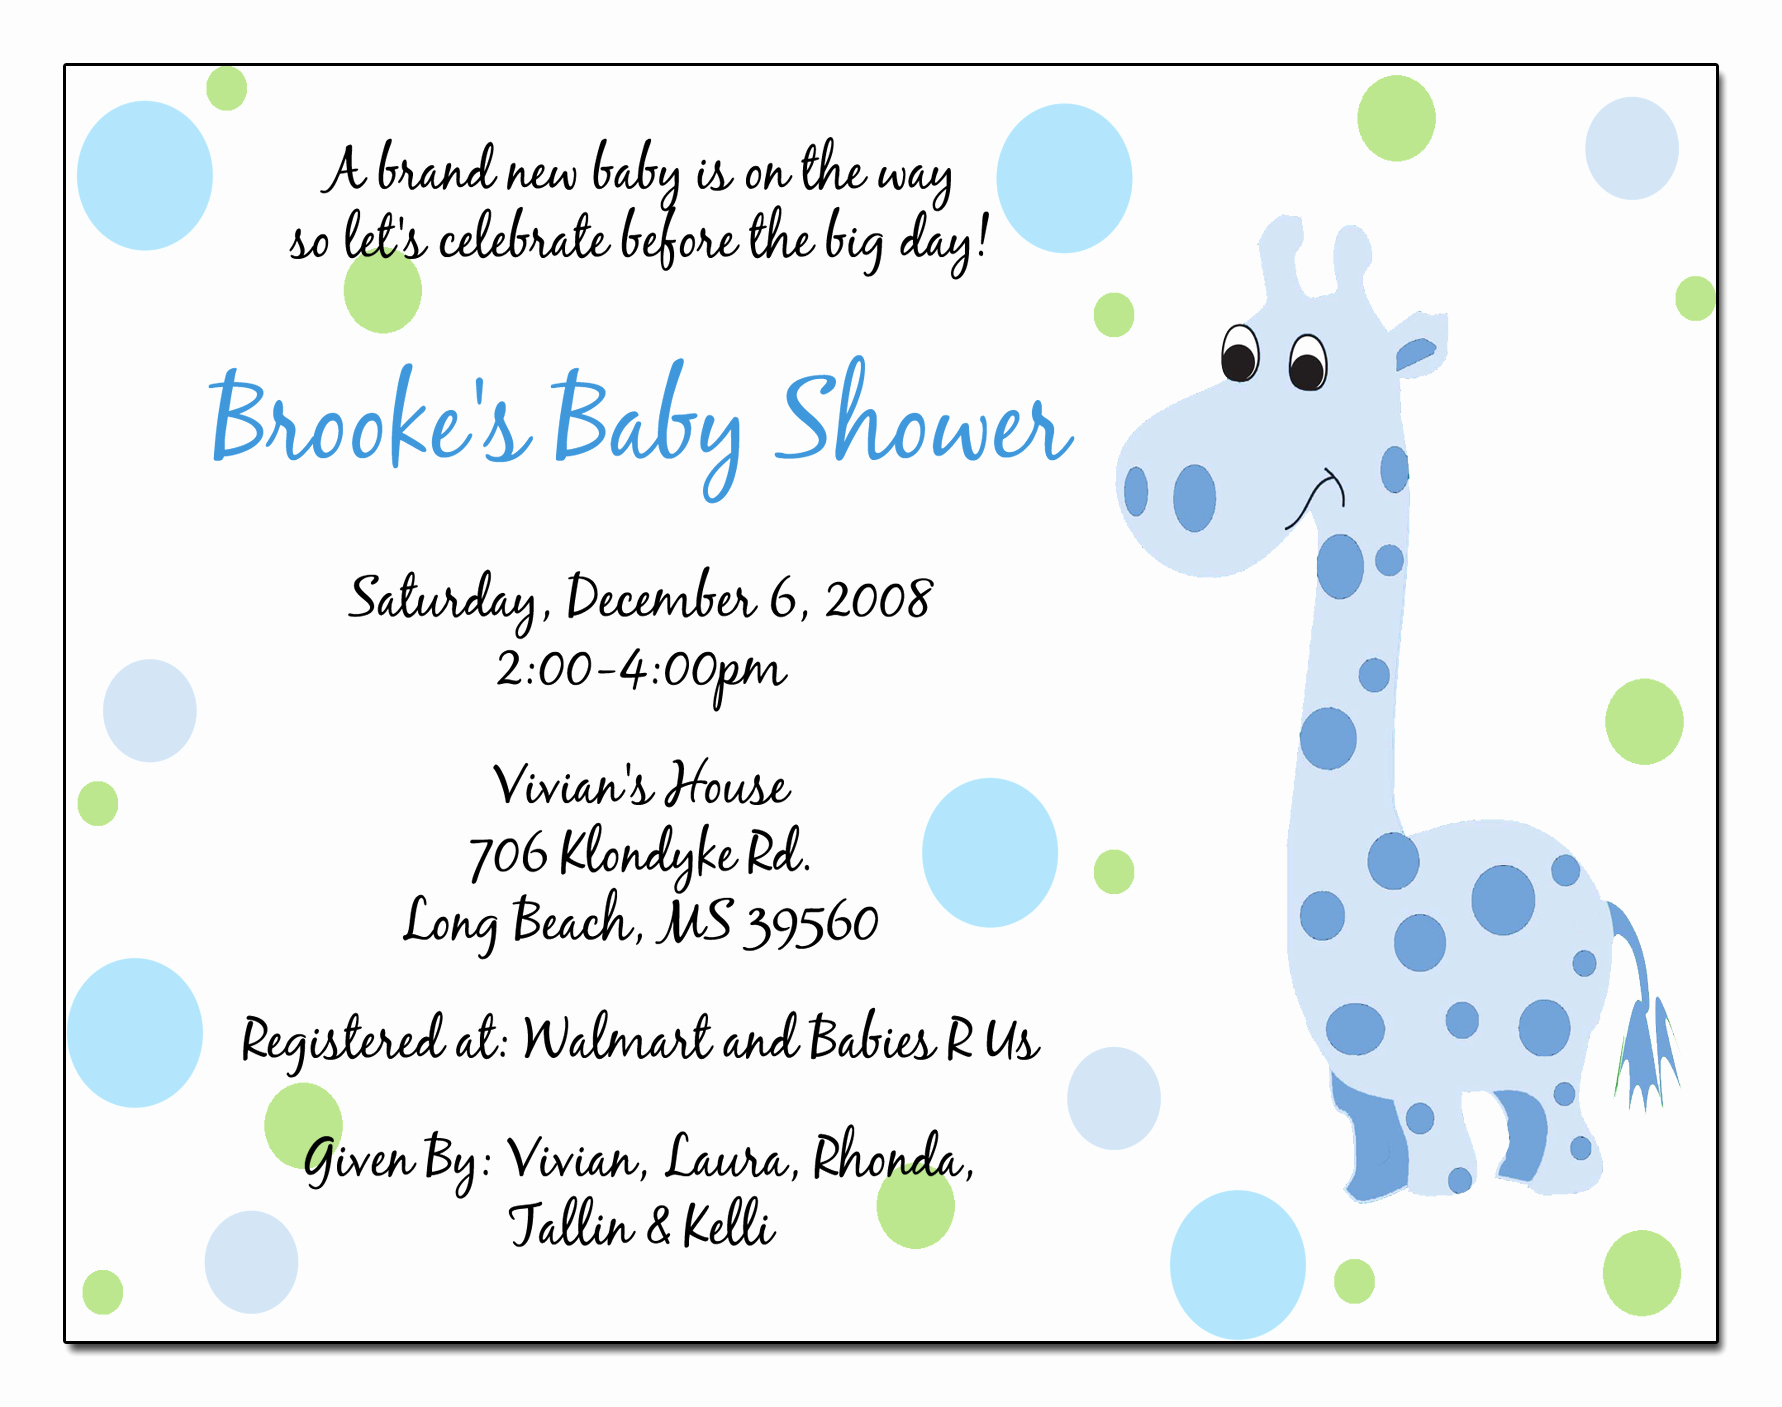 Baby Shower Invitation Example Awesome Baby Boy Shower Invitations Wording Ideas